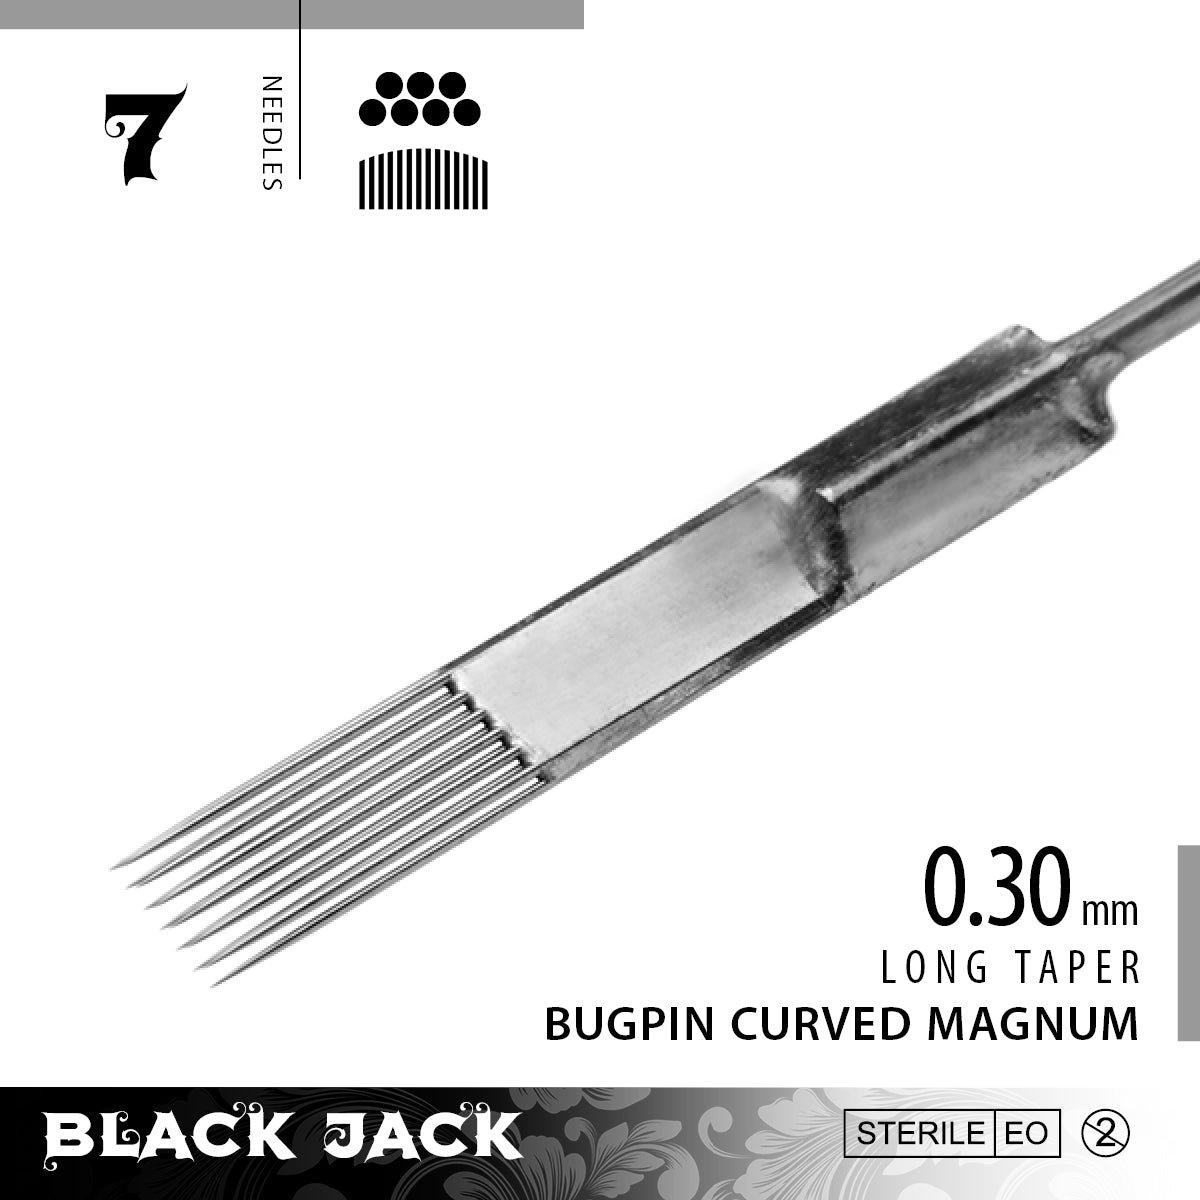 Black Jack Bugpin Curved Magnum Shader Bar Needles